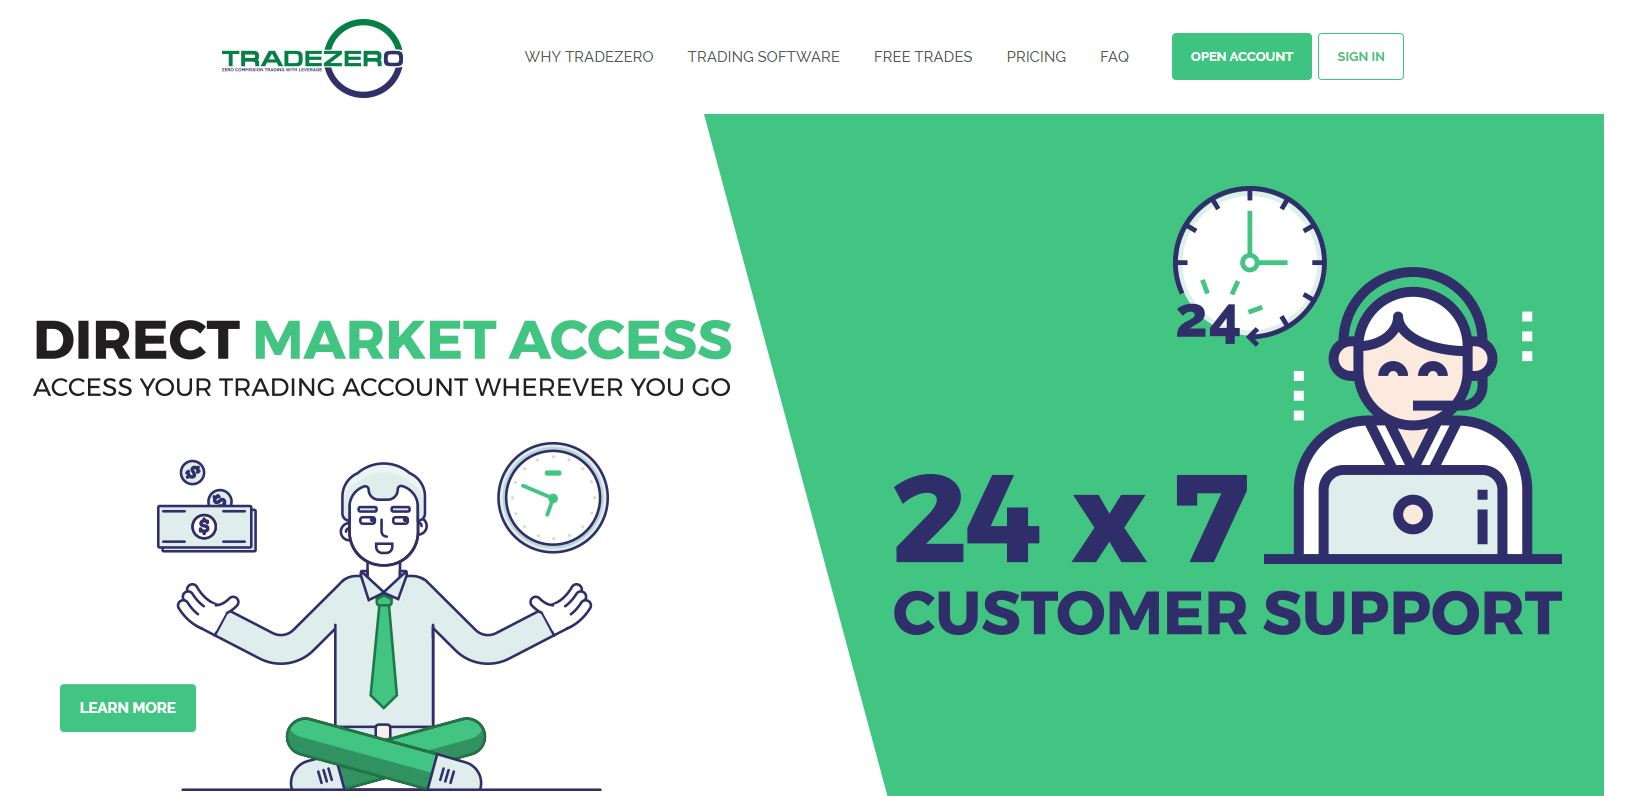 TradeZero Broker Review 2019: How It Matches Up - Warrior